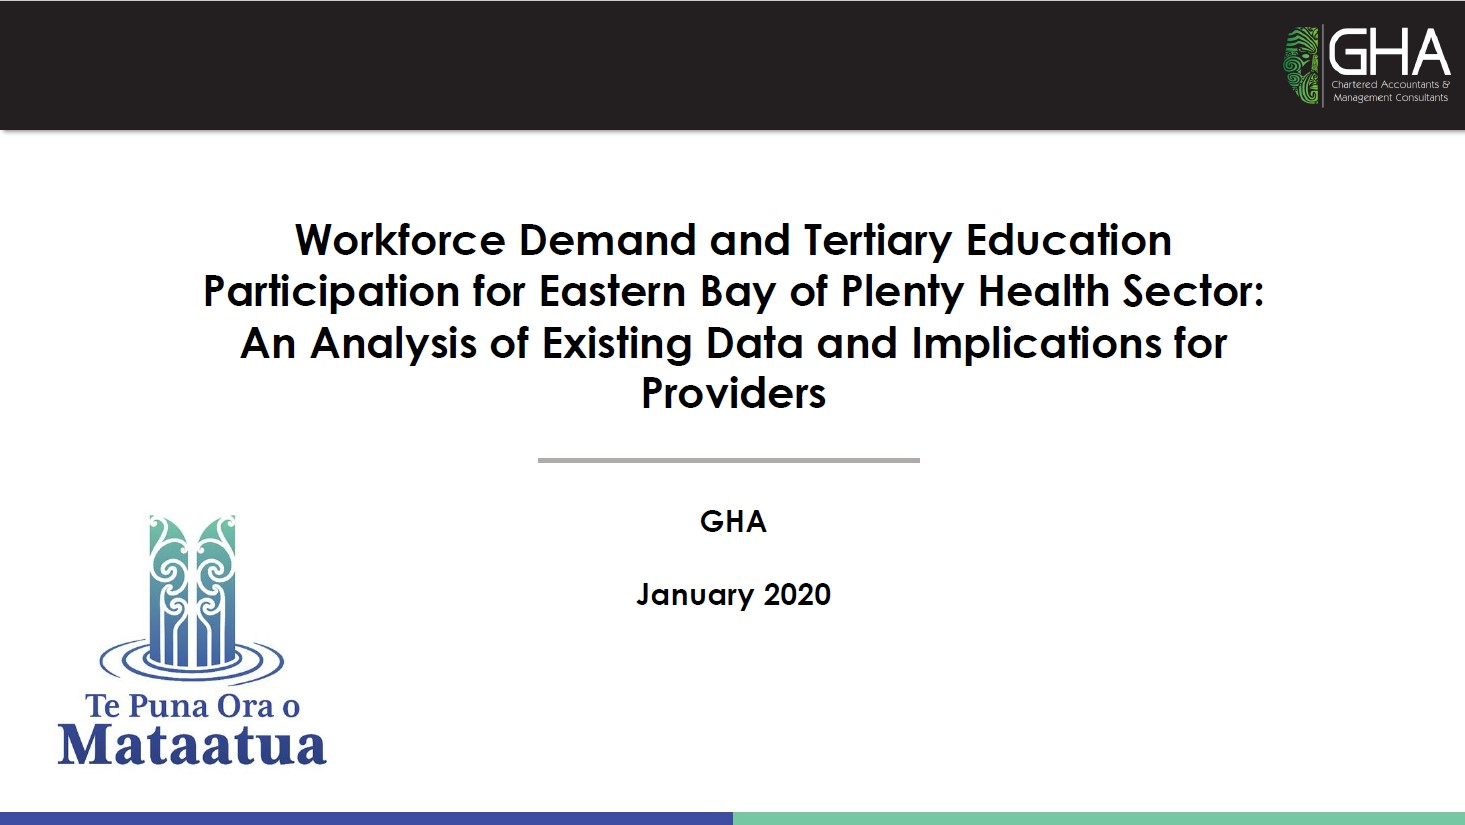 A screenshot of the front page of the Workforce Demand report.